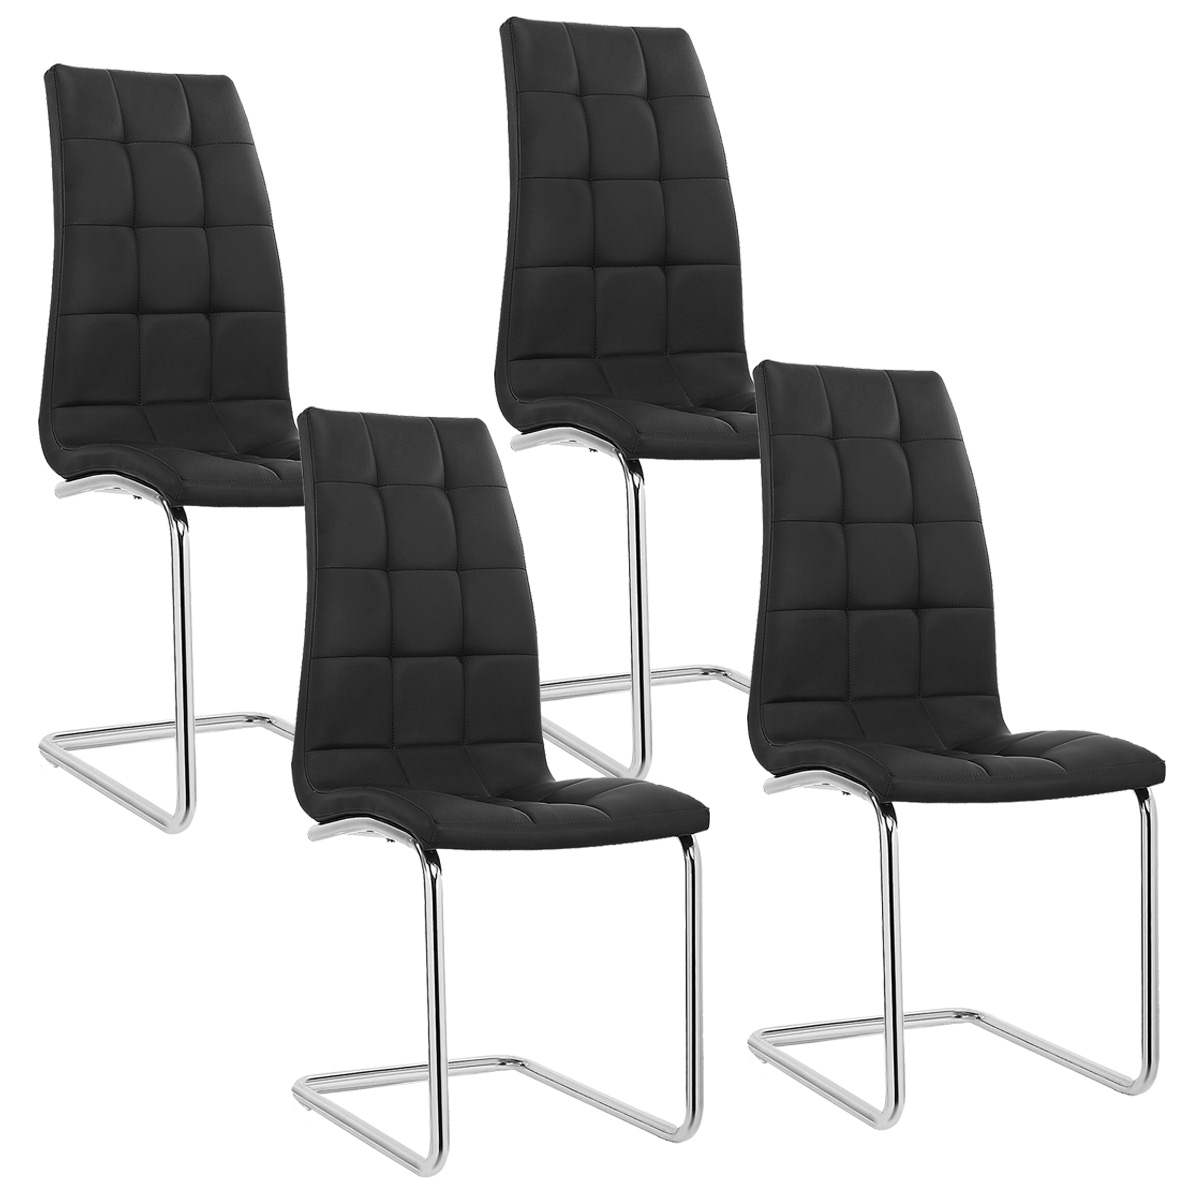 deco in paris lot de 4 chaises noir design matelasse